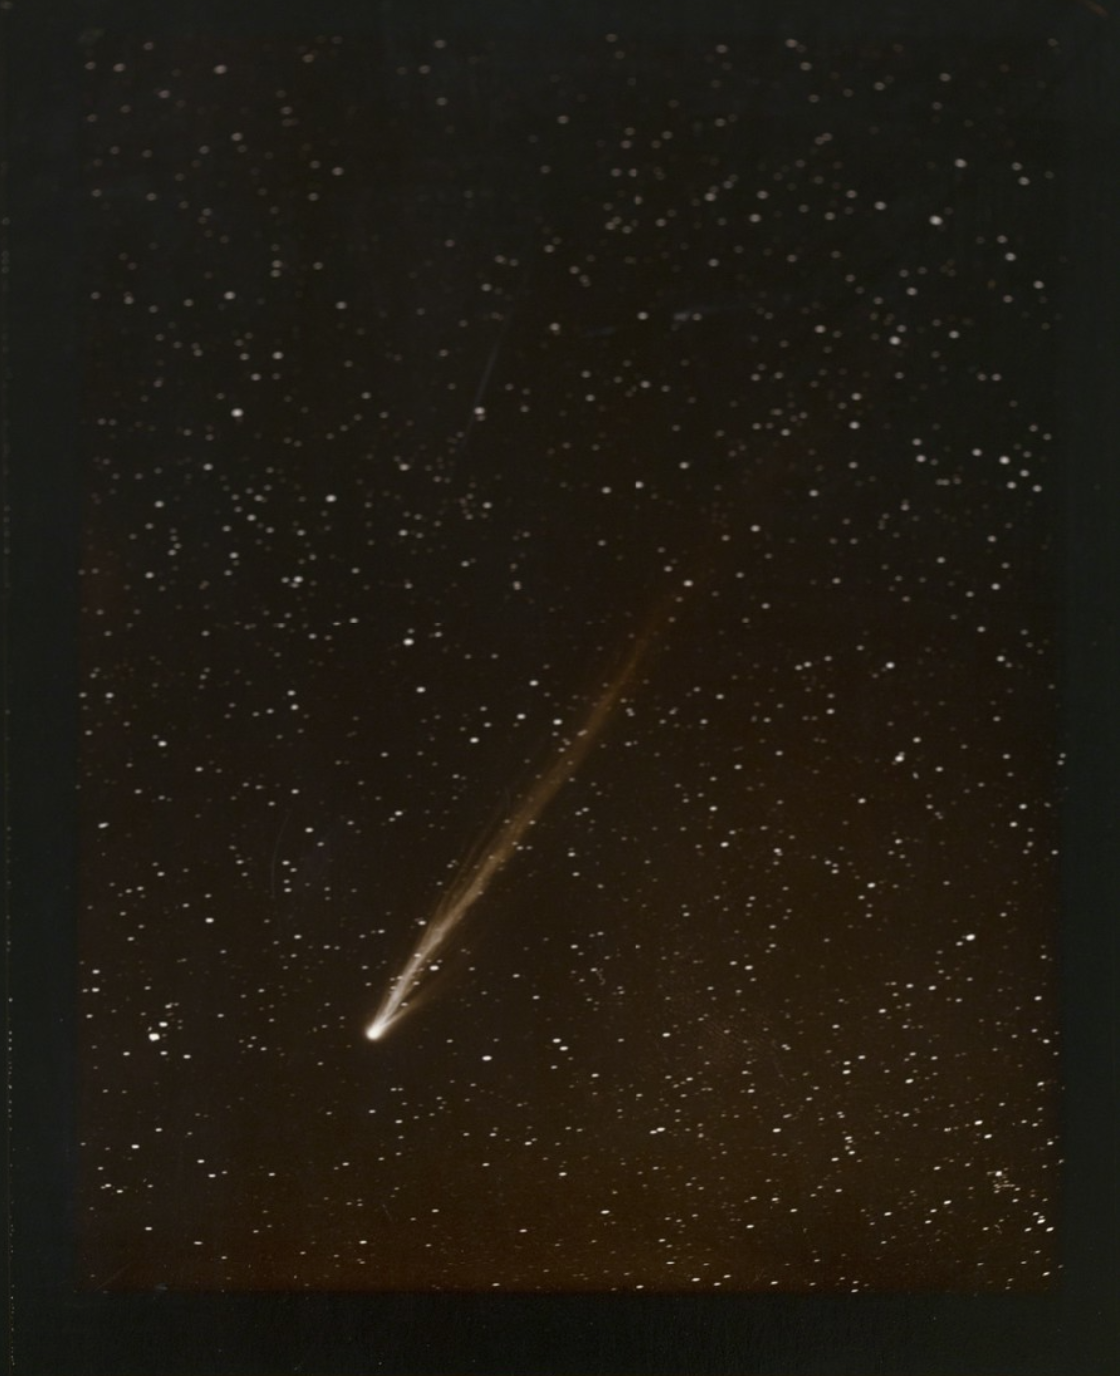 Morehouse Comet, 1908 , Linda Connor, 1996, Gold toned printing out paper from original glass plate negative, 12.5 x 10.5 inches. On view at Booth 444.